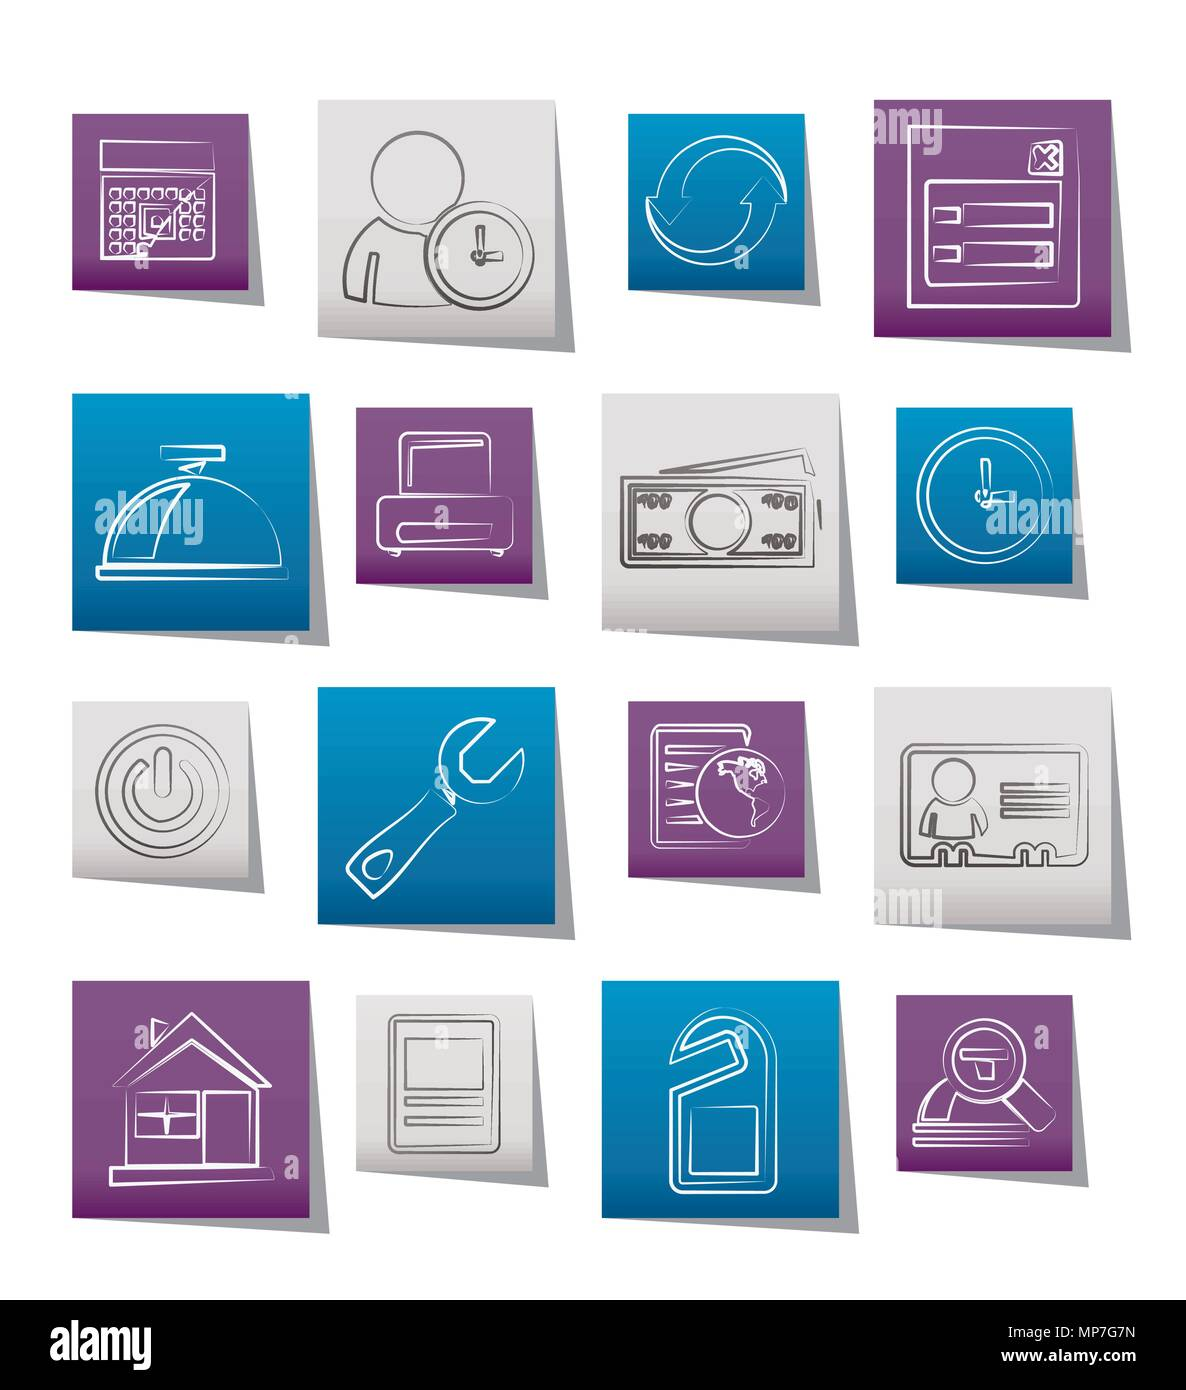 Reservation and hotel icons - vector icon set - Stock Vector